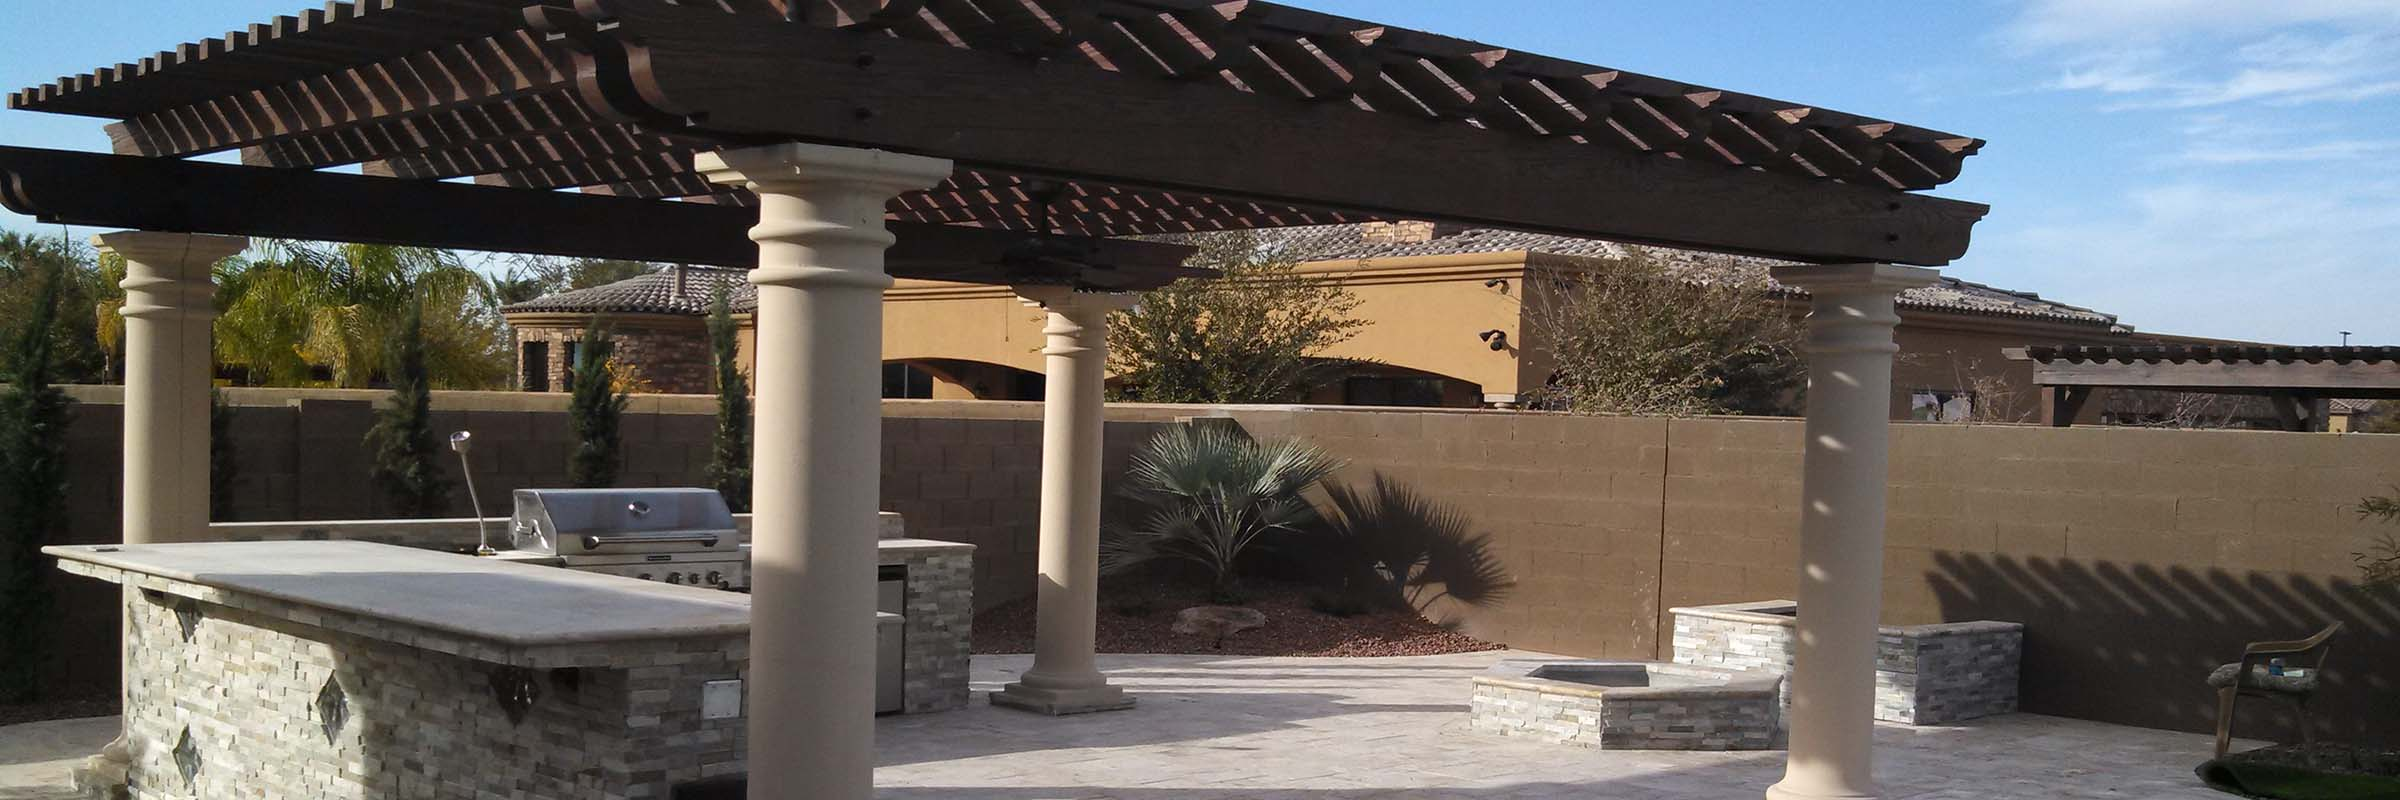 travertine-patio-pergola